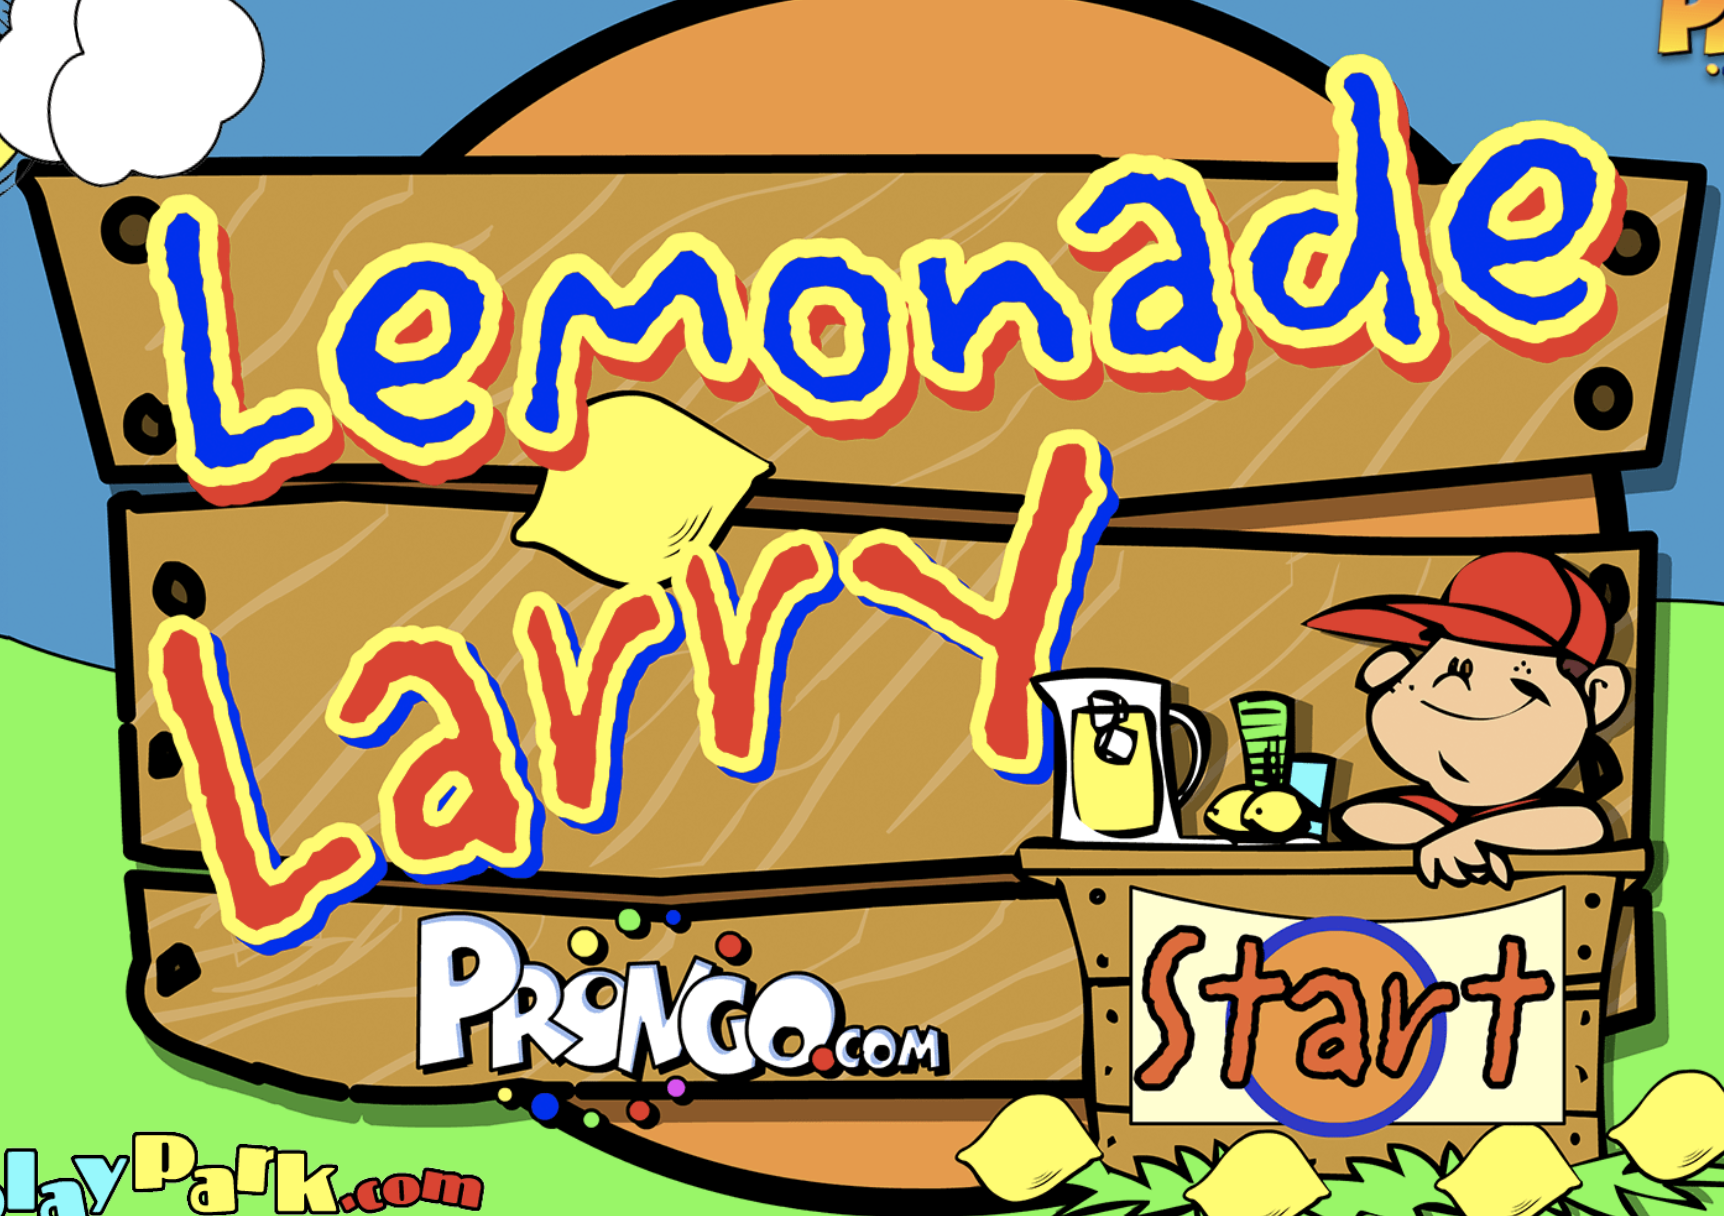 Image Lemonade Larry